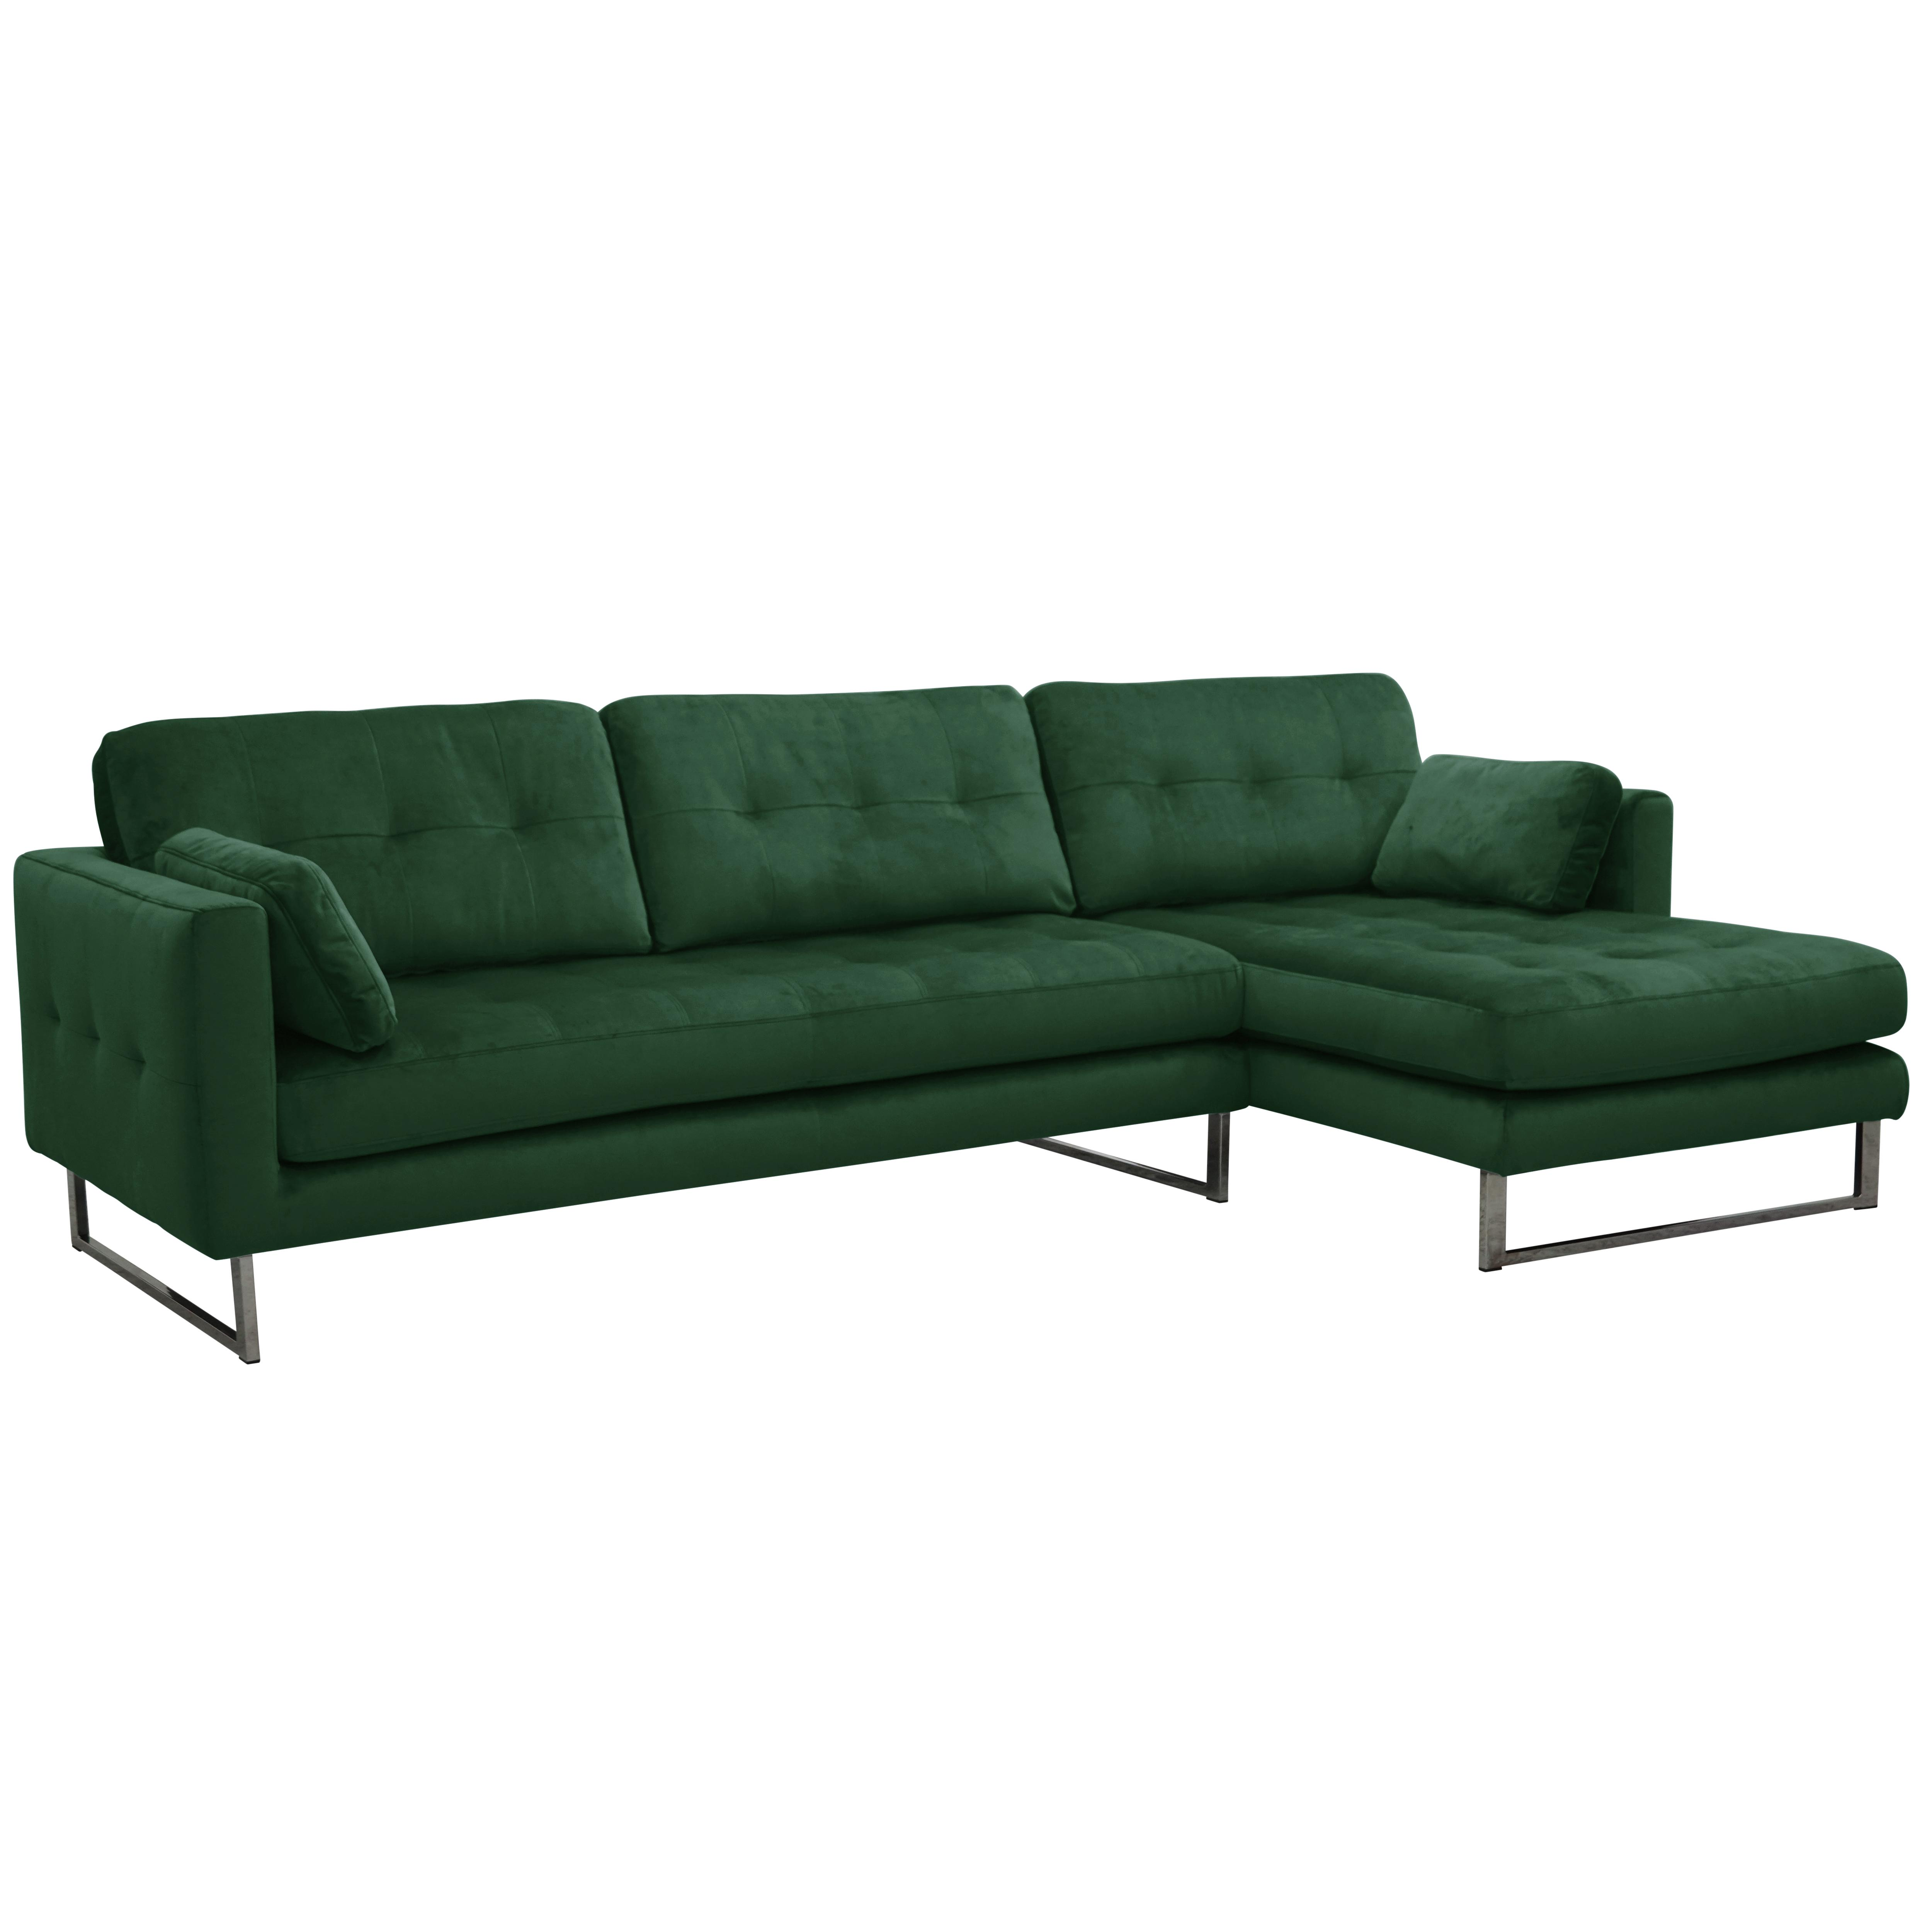 Paris II right hand facing four seater chaise sofa alba velvet forest green